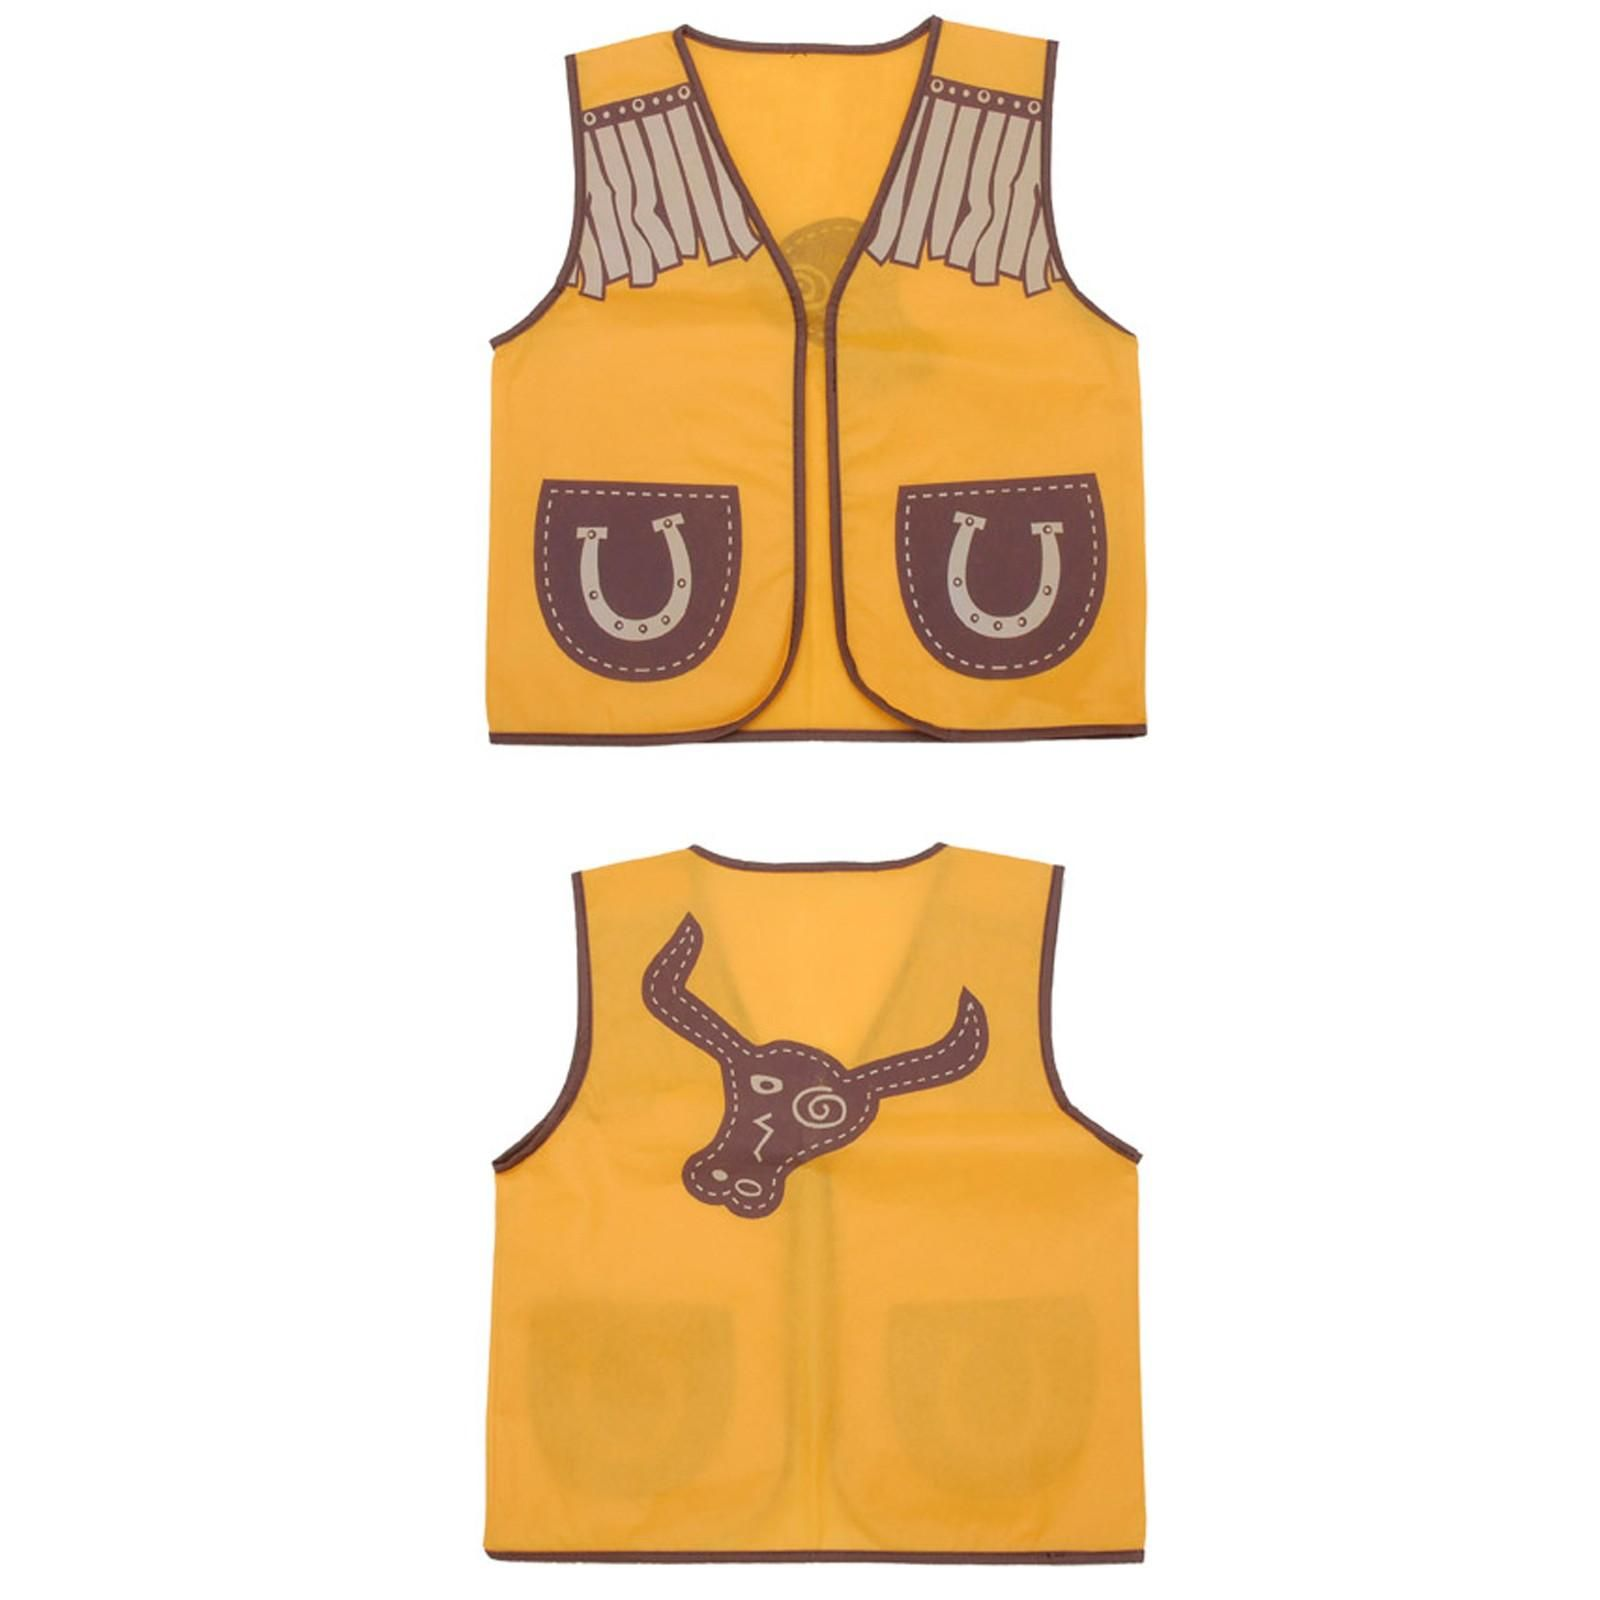 Cowgirl clipart vest. Cool costumes western just